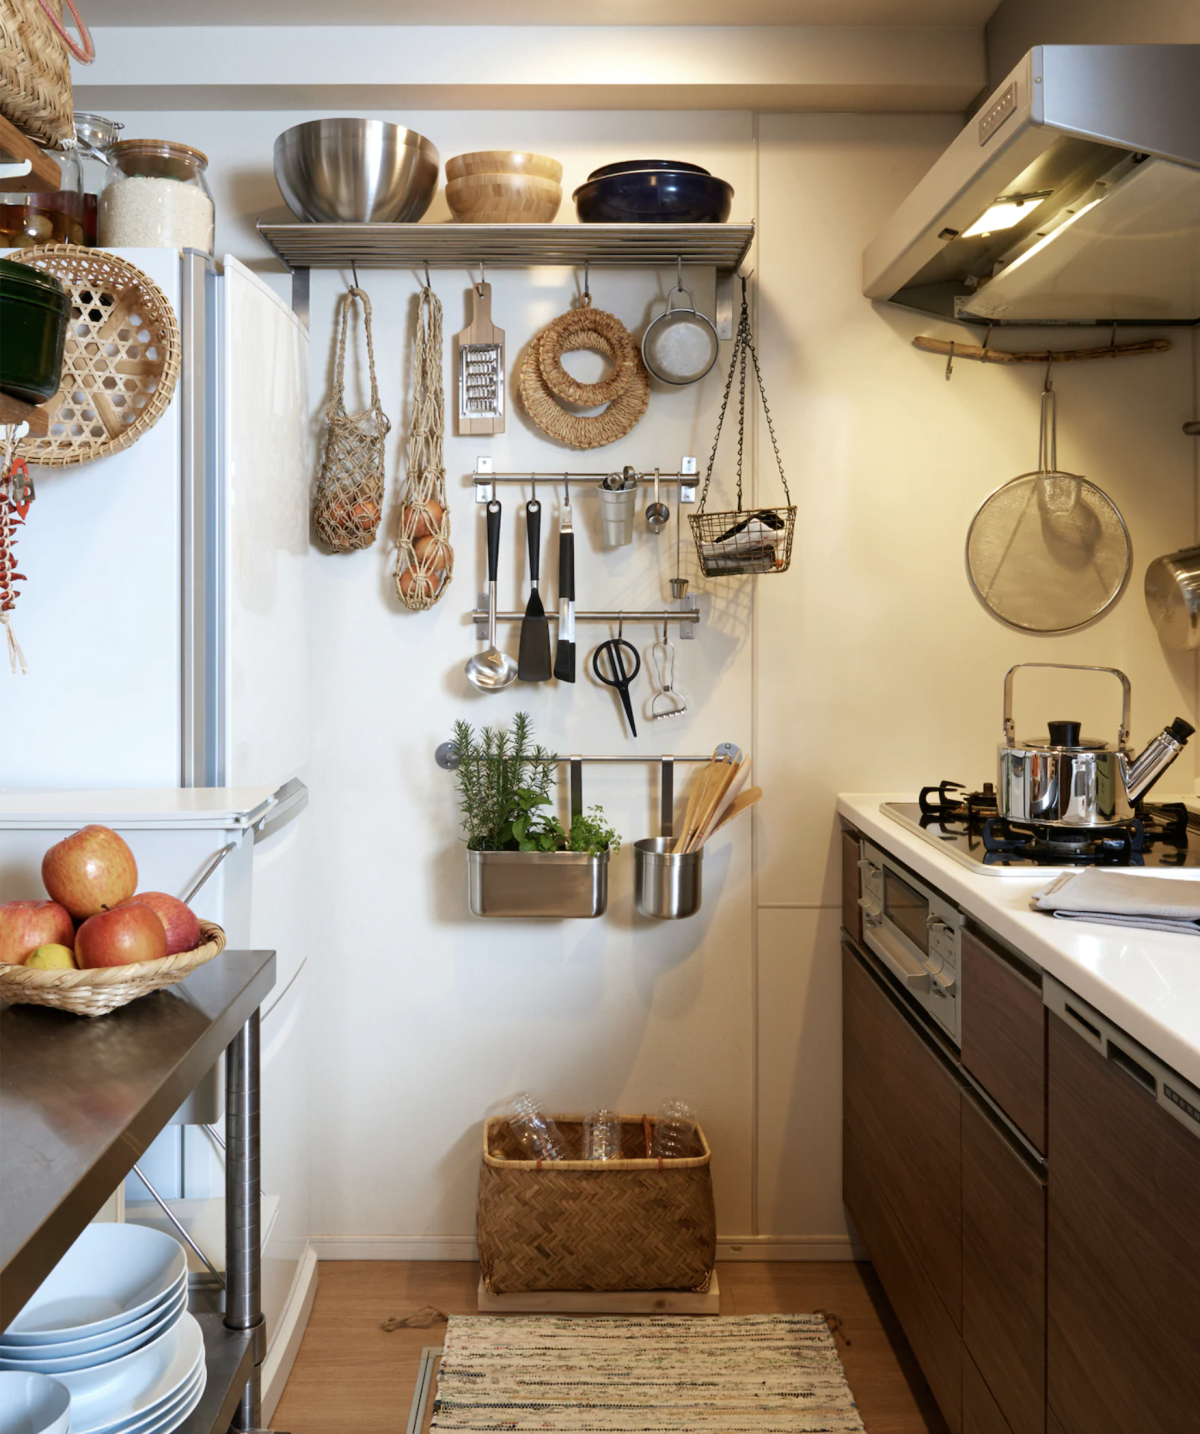 25 Storage Ideas For Small Kitchens Tips Tricks And Hacks To Organize A Tiny Space Real Homes